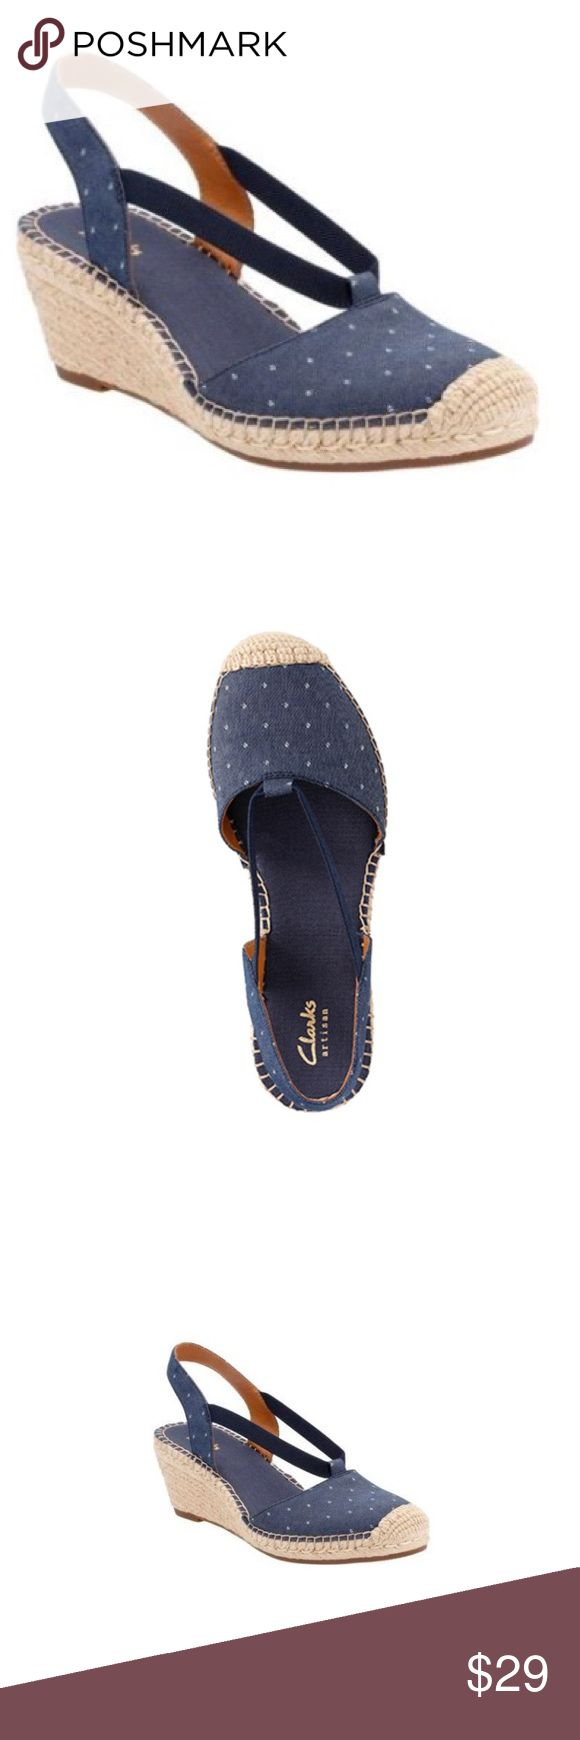 Clarks Artisan Patrina Kaelie Espadrille Wedge EUC Clarks Artisan Patrina Kaelie Espadrilles • Wedges • Slingback • Polka dot in Blue • EUC • worn on Cruise ship only • no trades Clarks Shoes Wedges